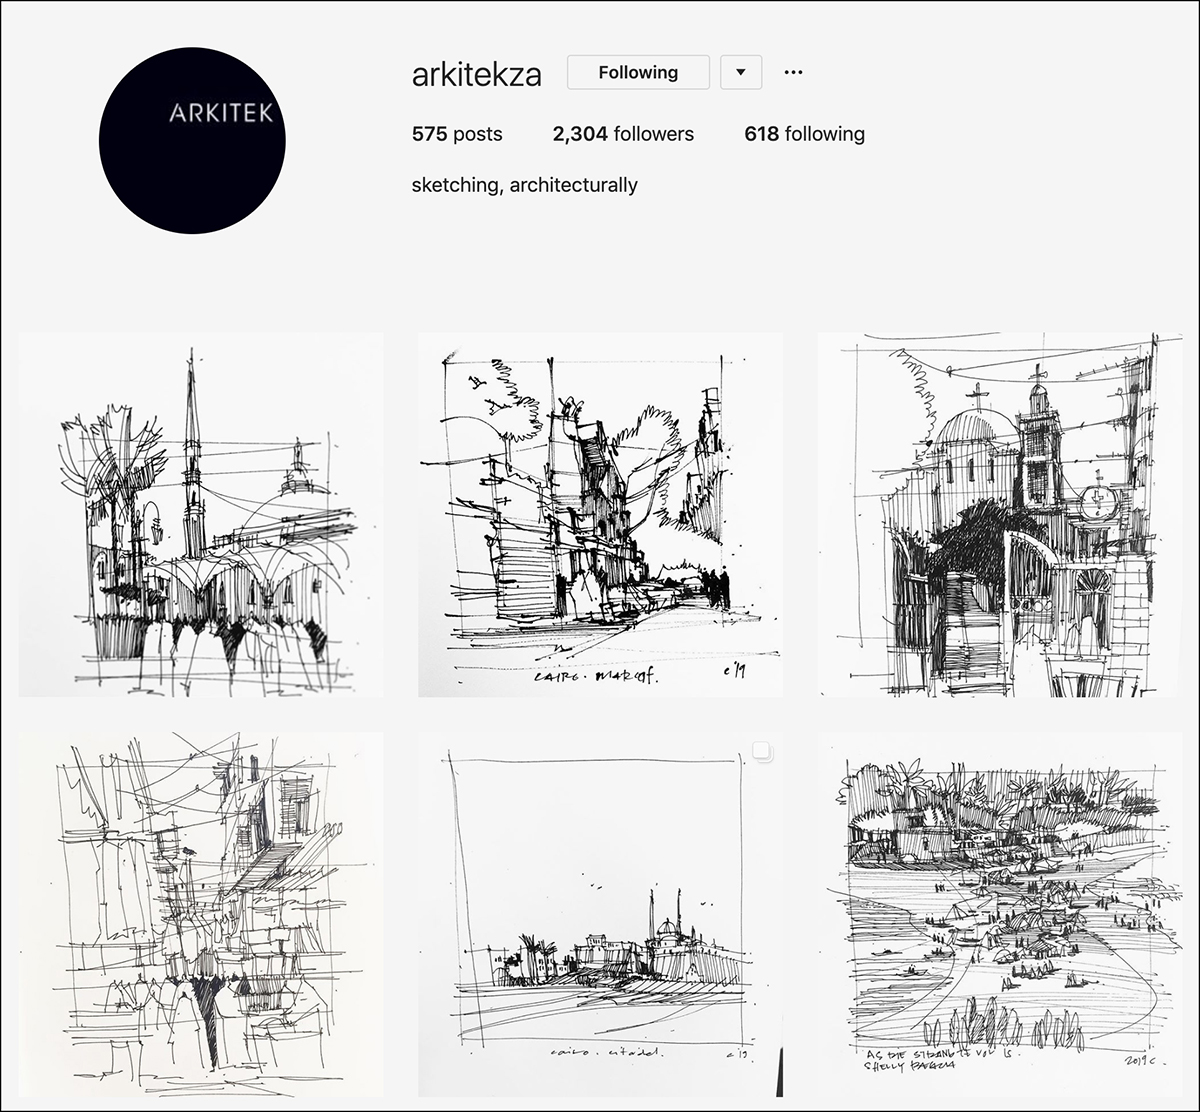 arkitekza Instagram account - good for sketching